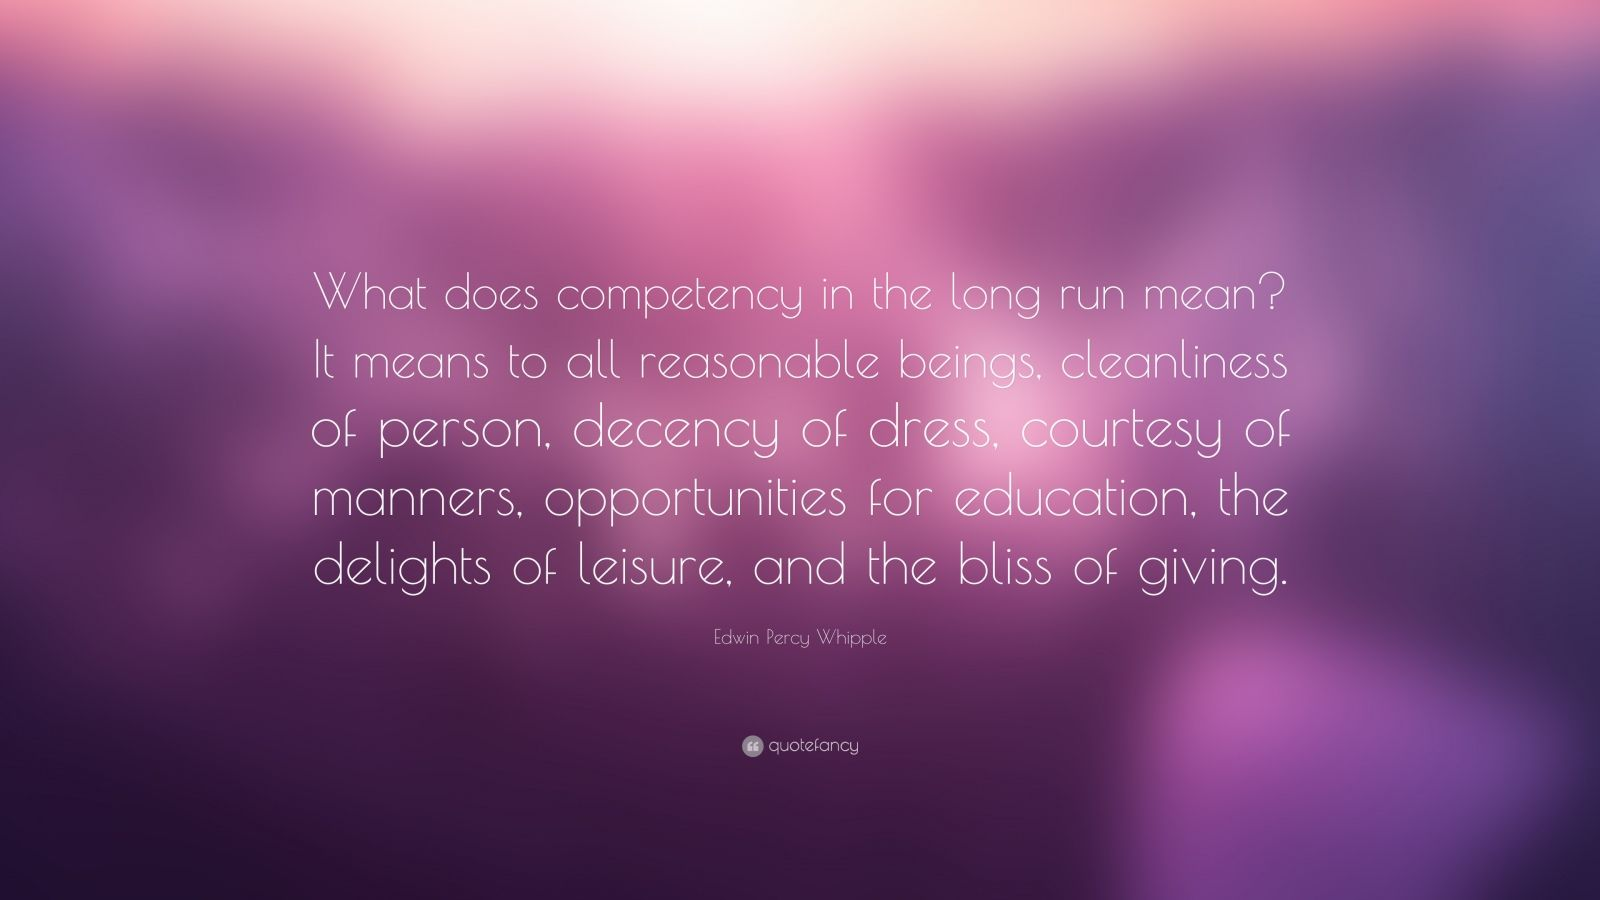 "Edwin Percy Whipple Quote: ""What does competency in the long run mean? It means to all reasonable beings, cleanliness of person, decency of dress, courtesy of manners, opportunities for education, the delights of leisure, and the bliss of giving."""